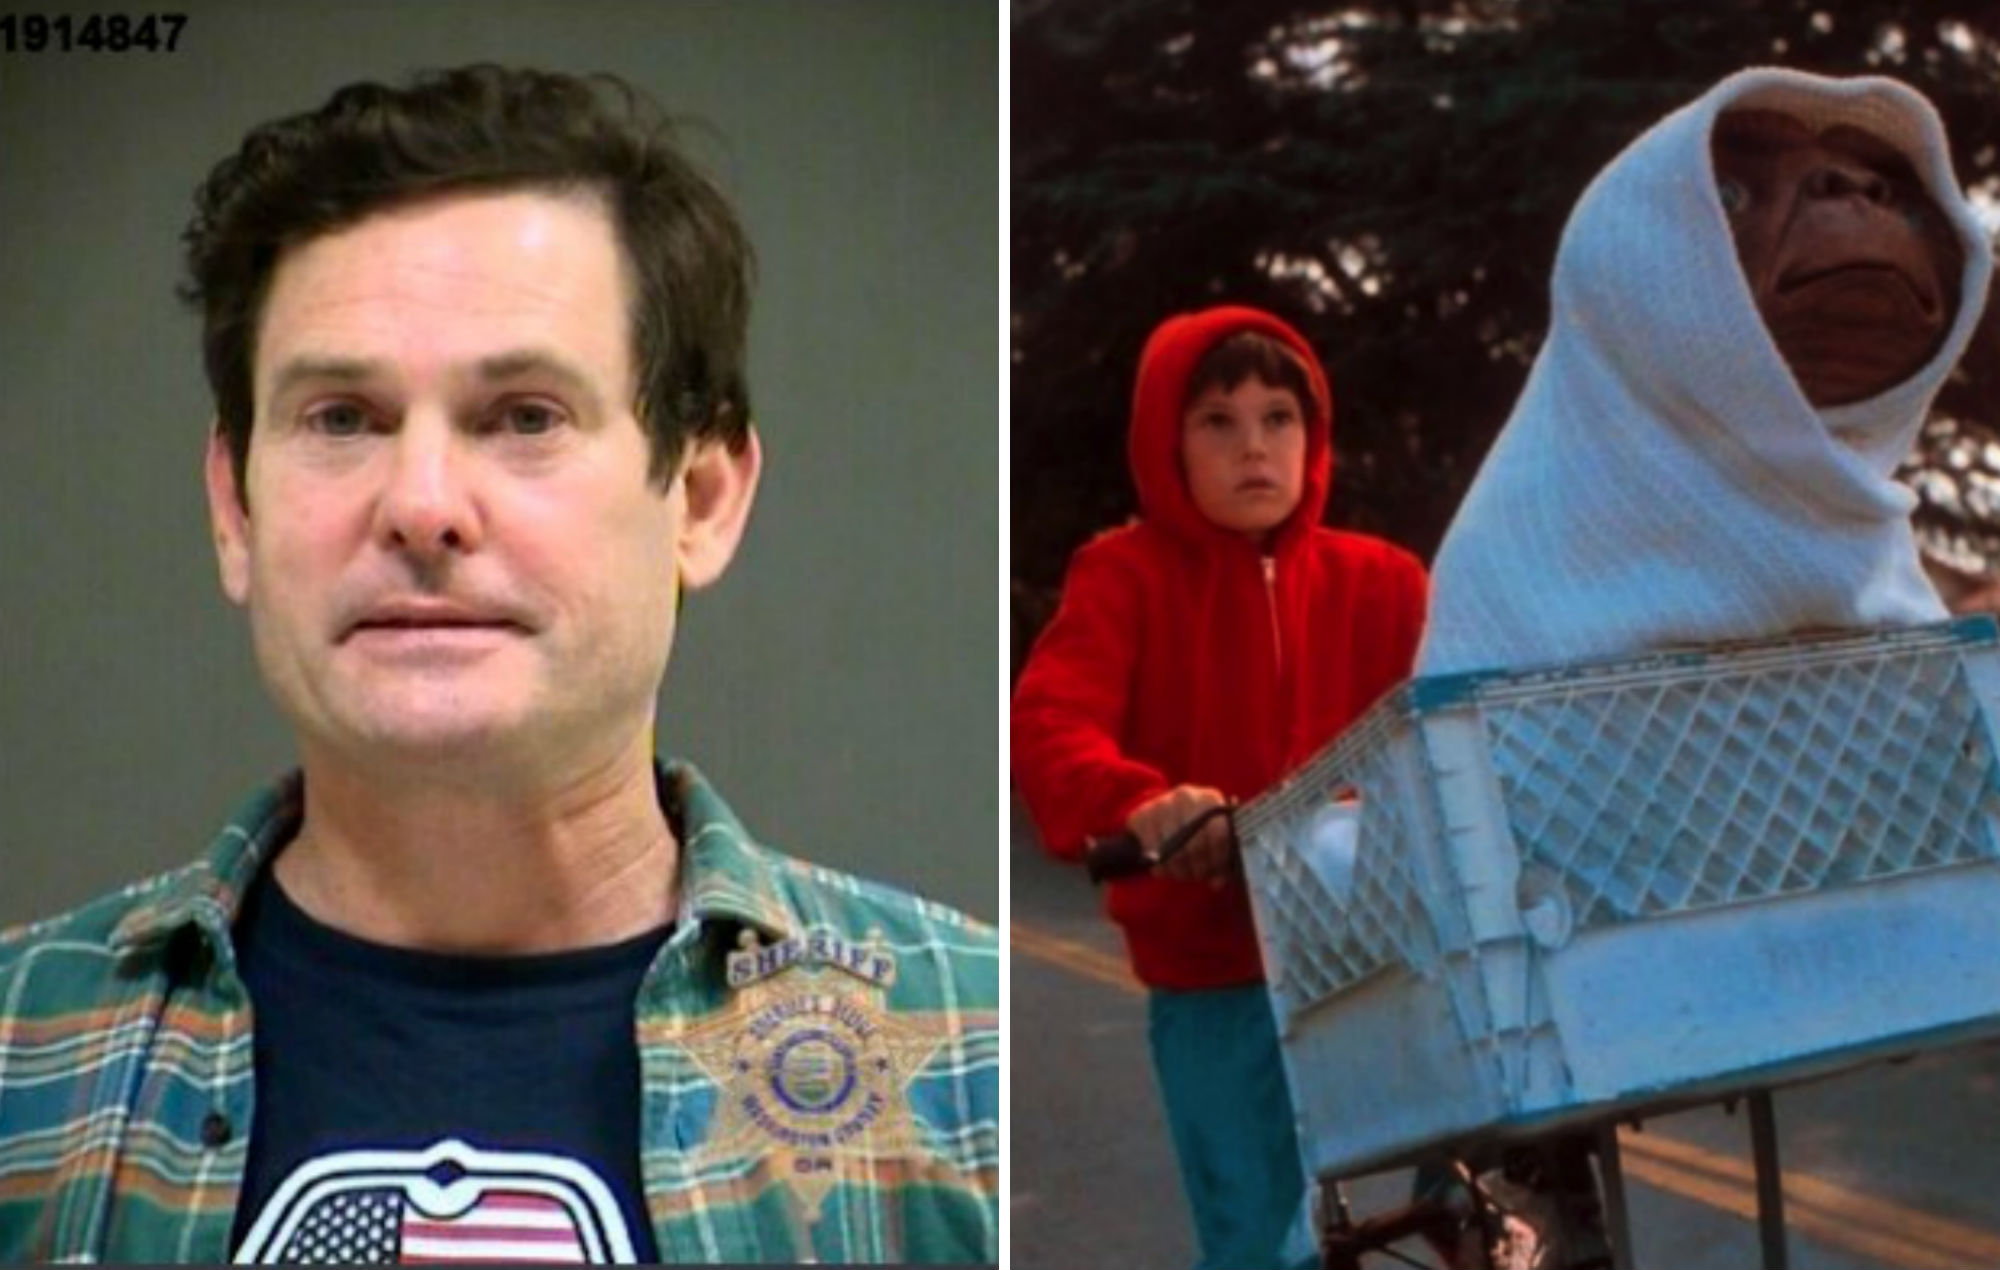 'E.T.' actor Henry Thomas arrested for allegedly driving under the influence